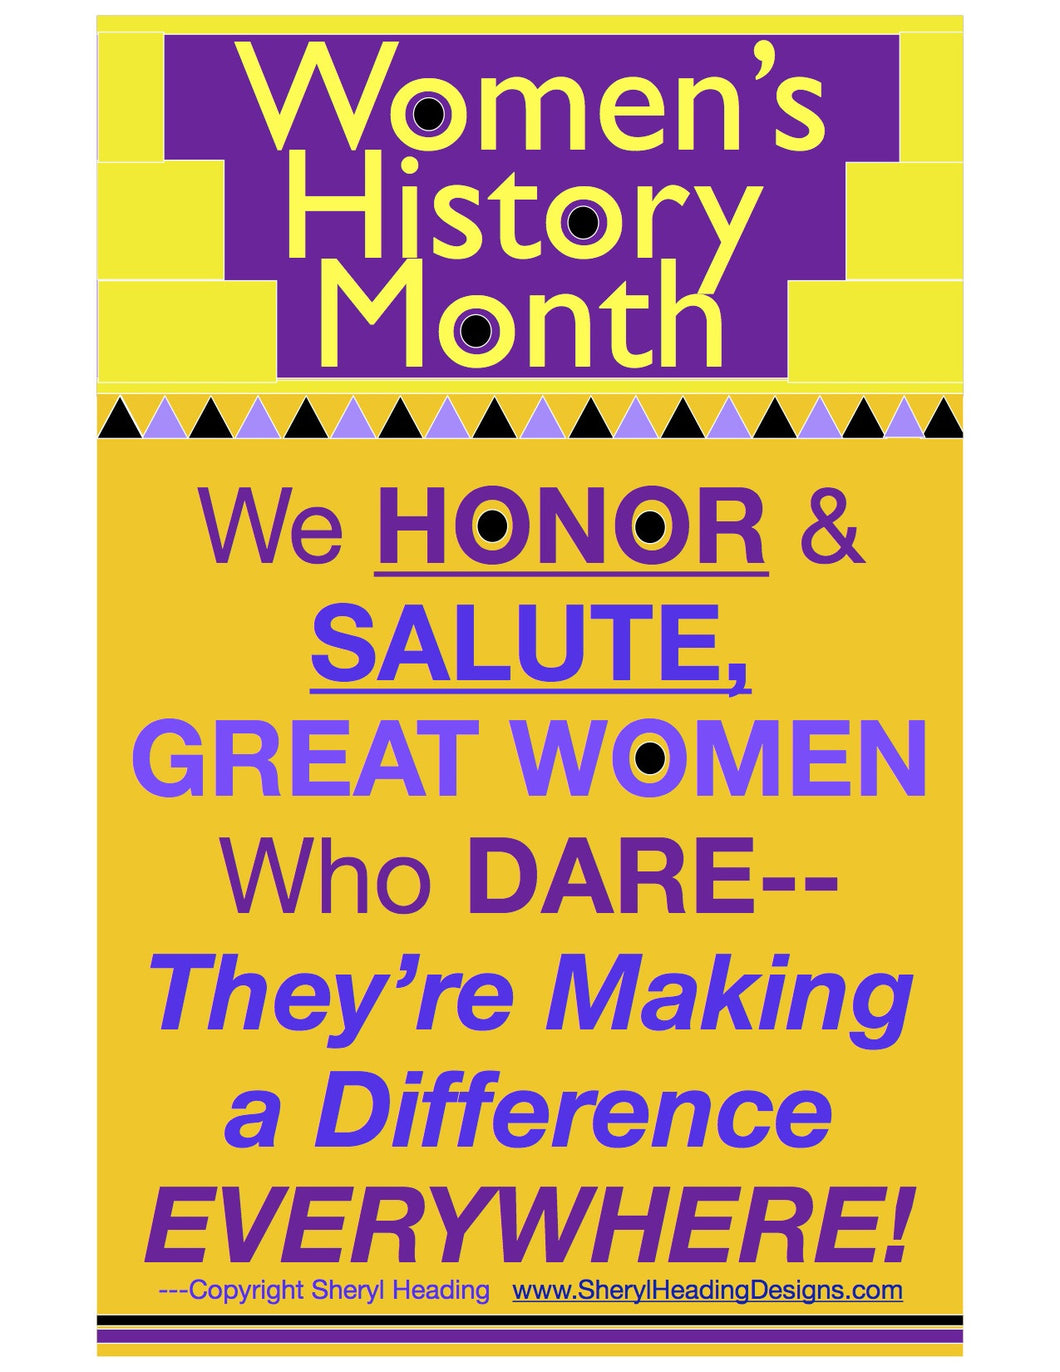 Women's History Month 2. We Honor and Salute Great Women Who Dare... Poster - Sheryl Heading Designs